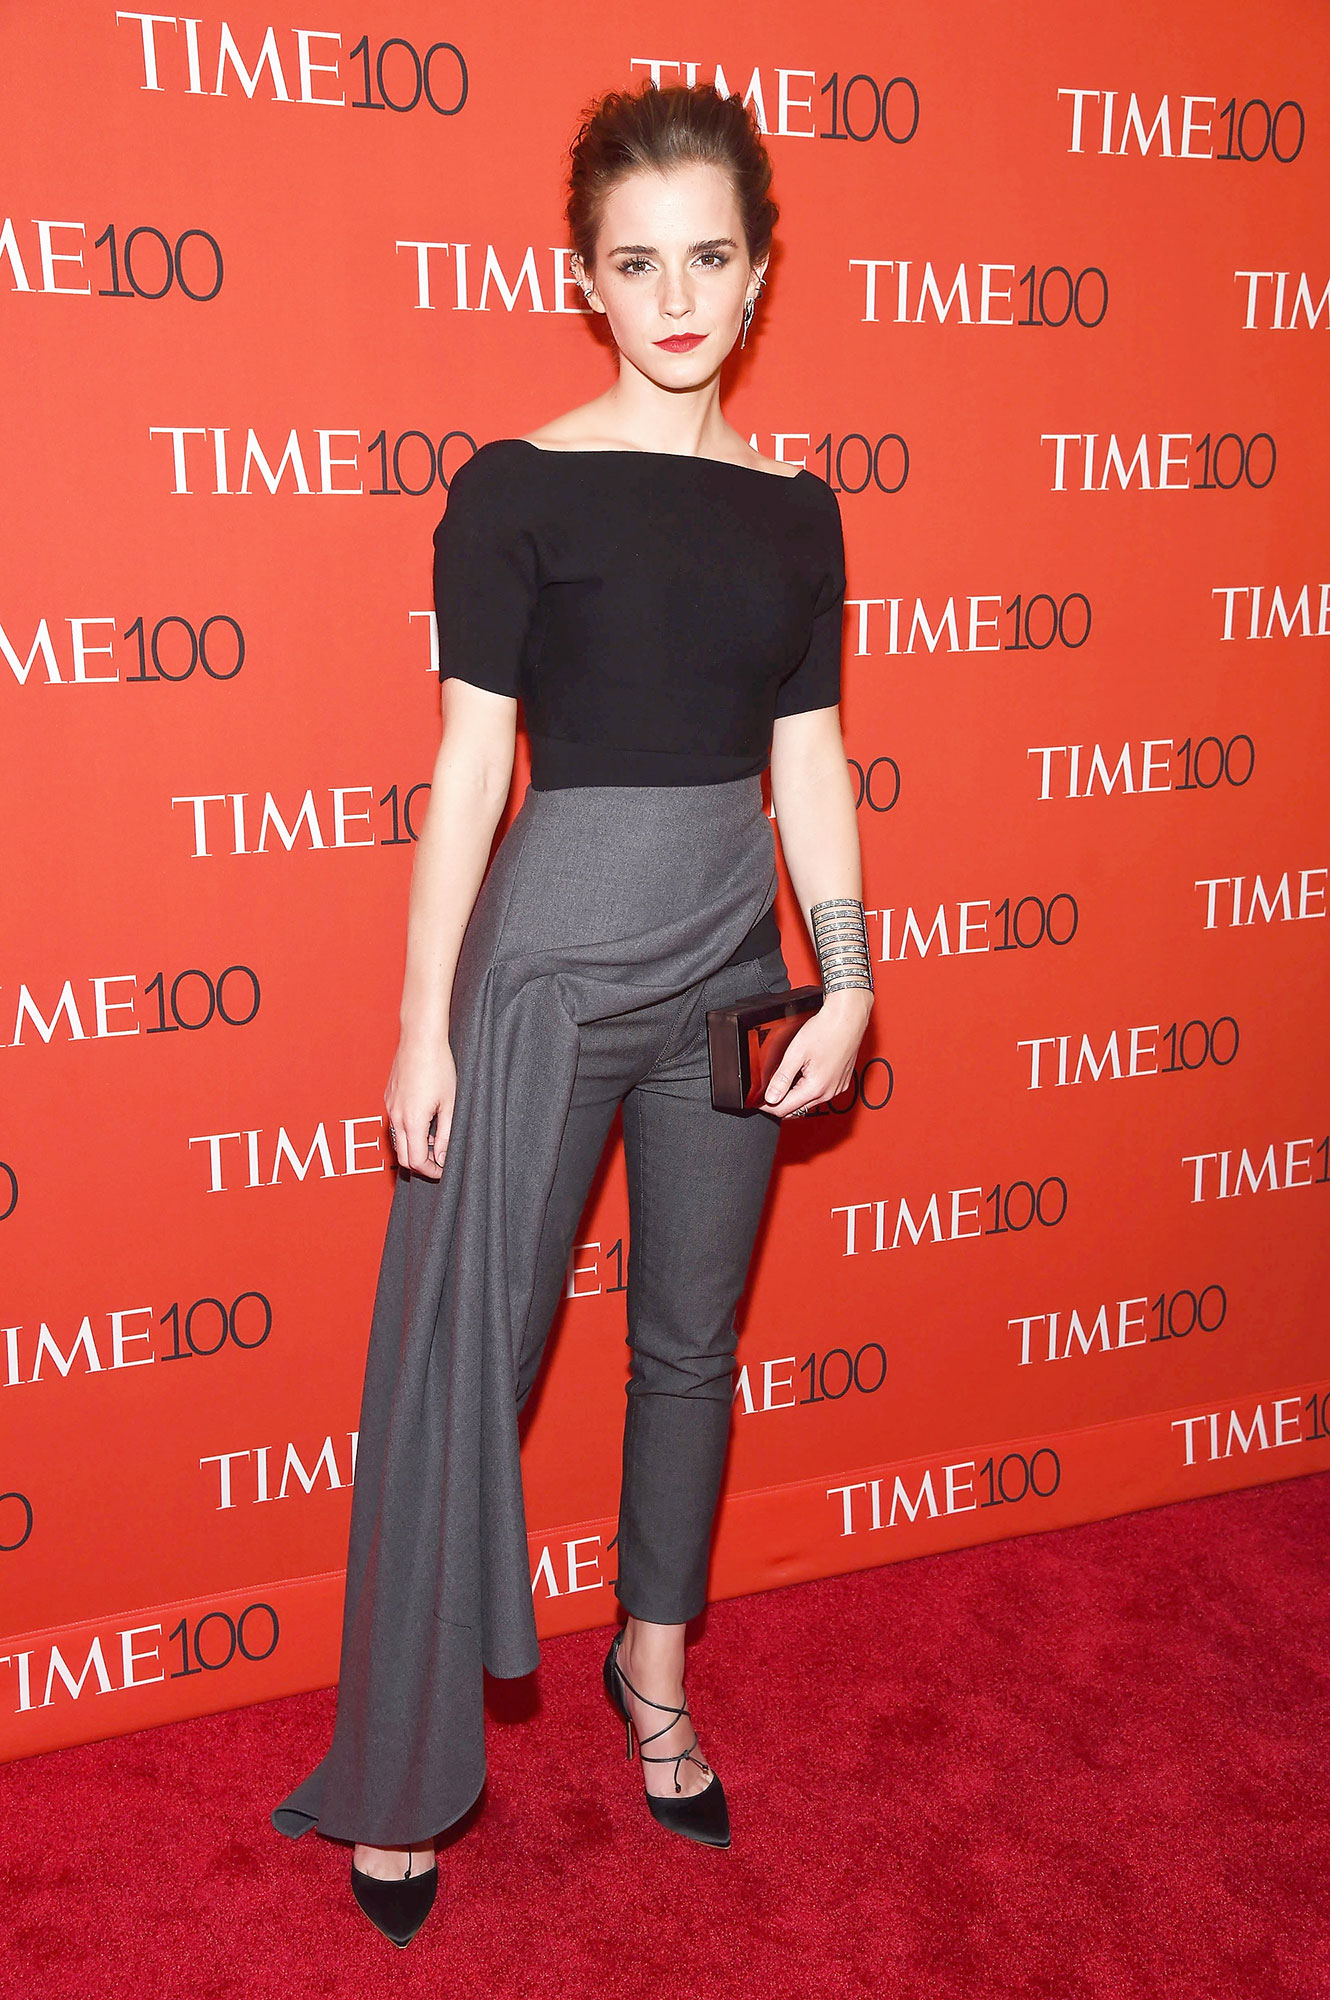 Emma Watson birthday red carpet outfits - She wears the pants! The actress sported a Dior jumpsuit with lace-up Rupert Sanderson pumps and a Rauwolf clutch at the Time 100 Gala in NYC.